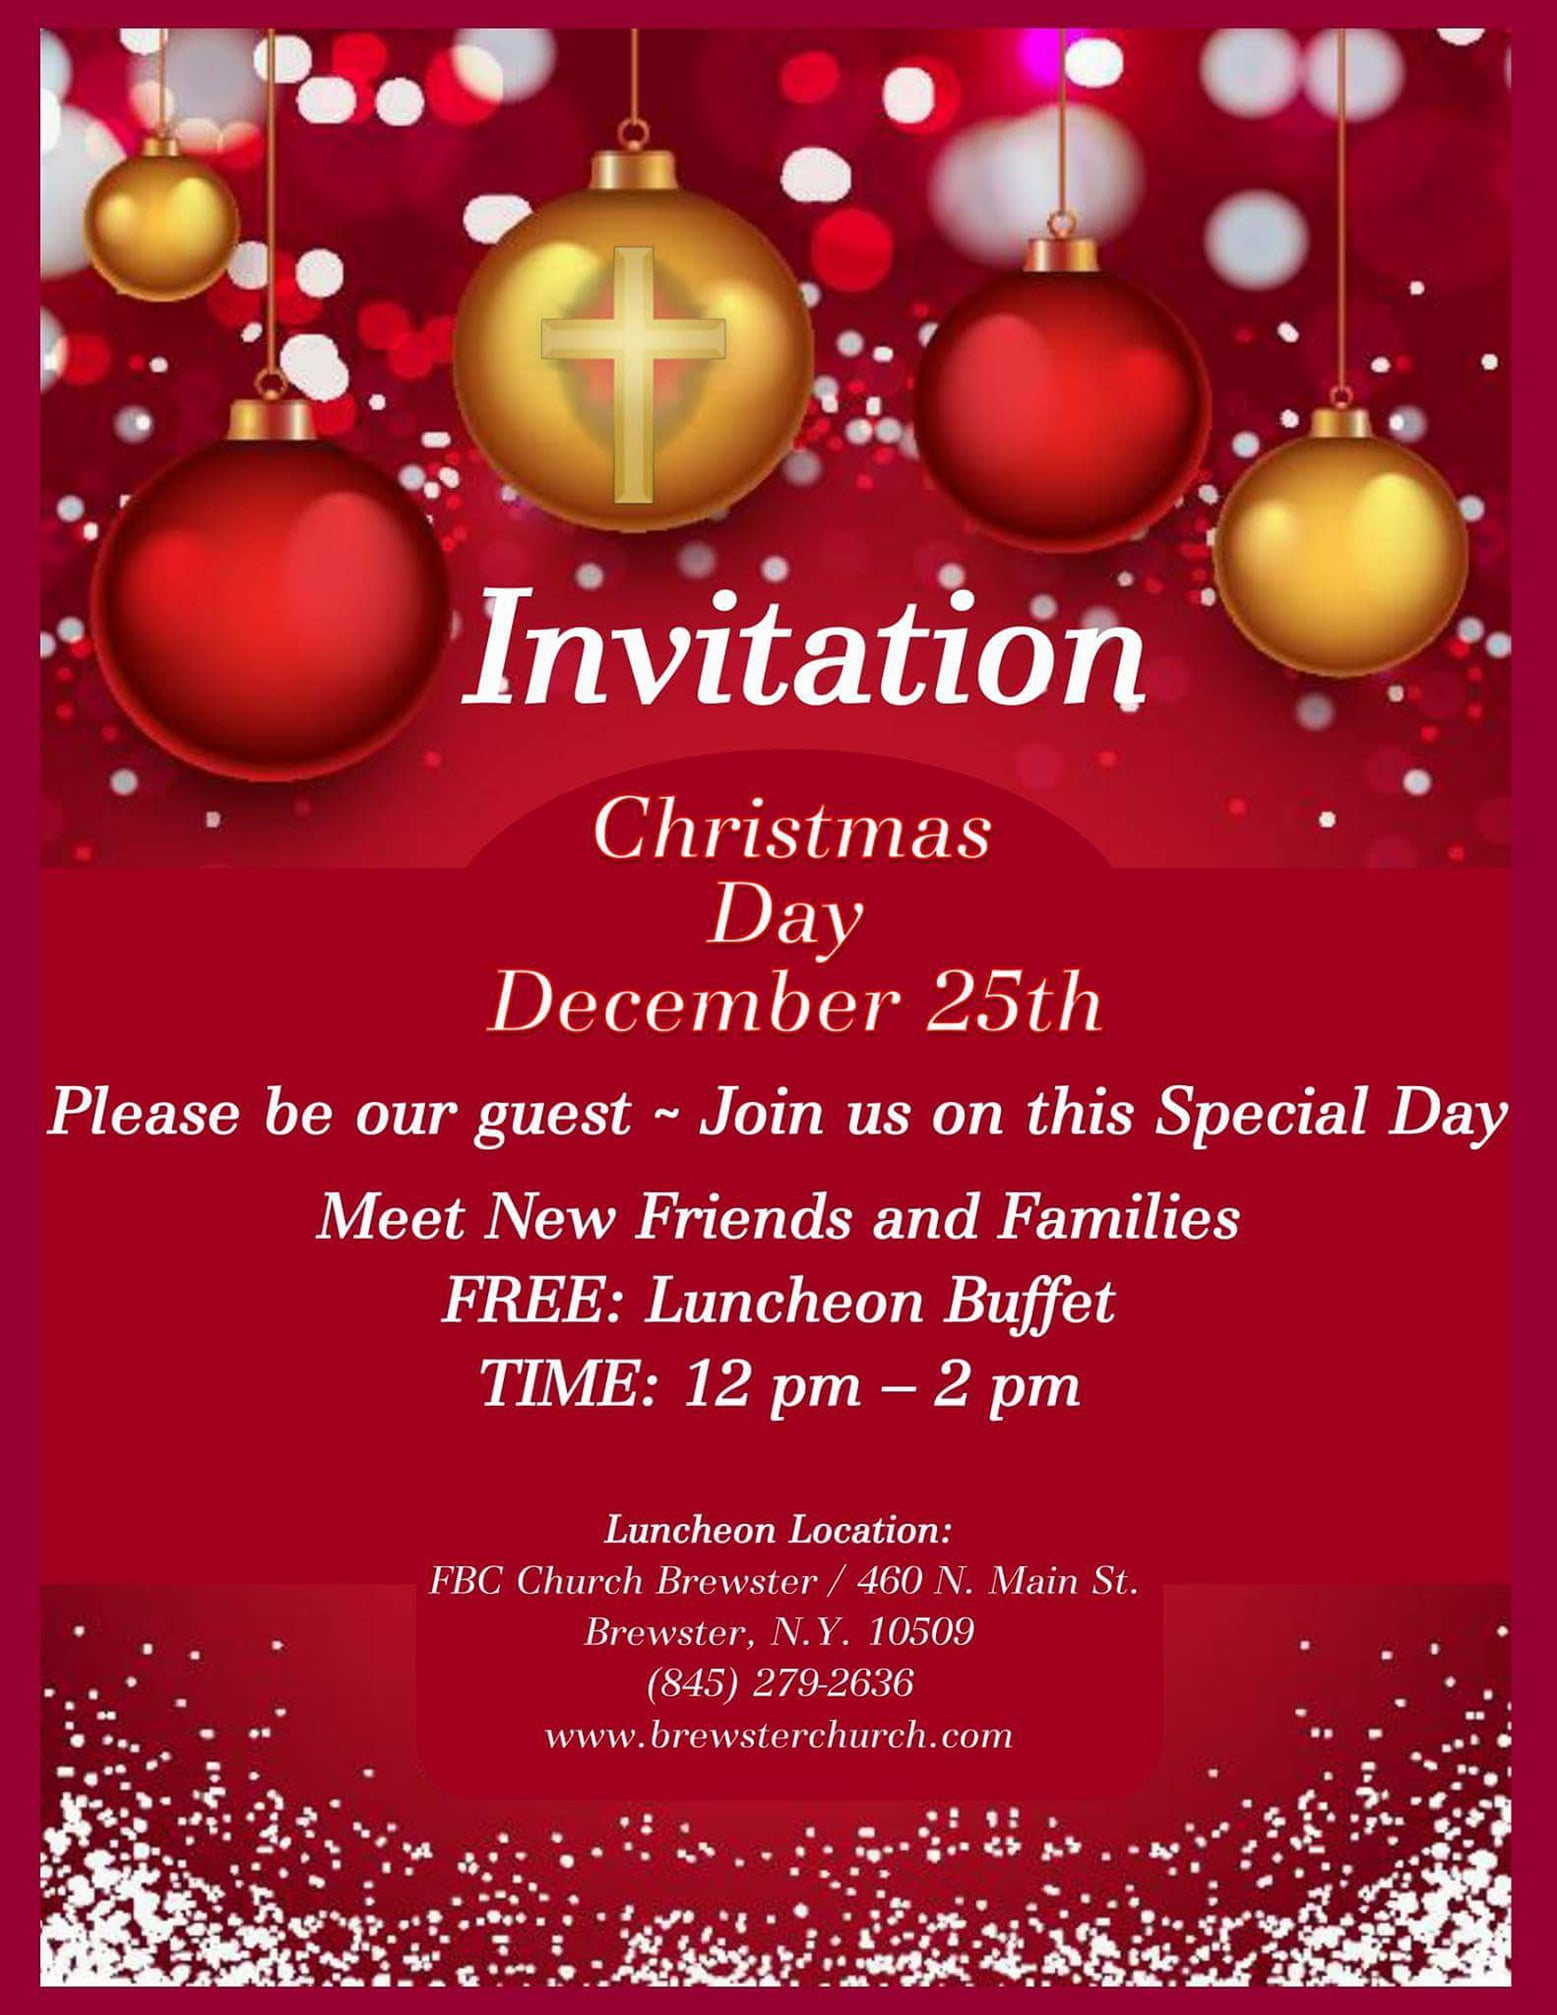 free christmas luncheon with fbc